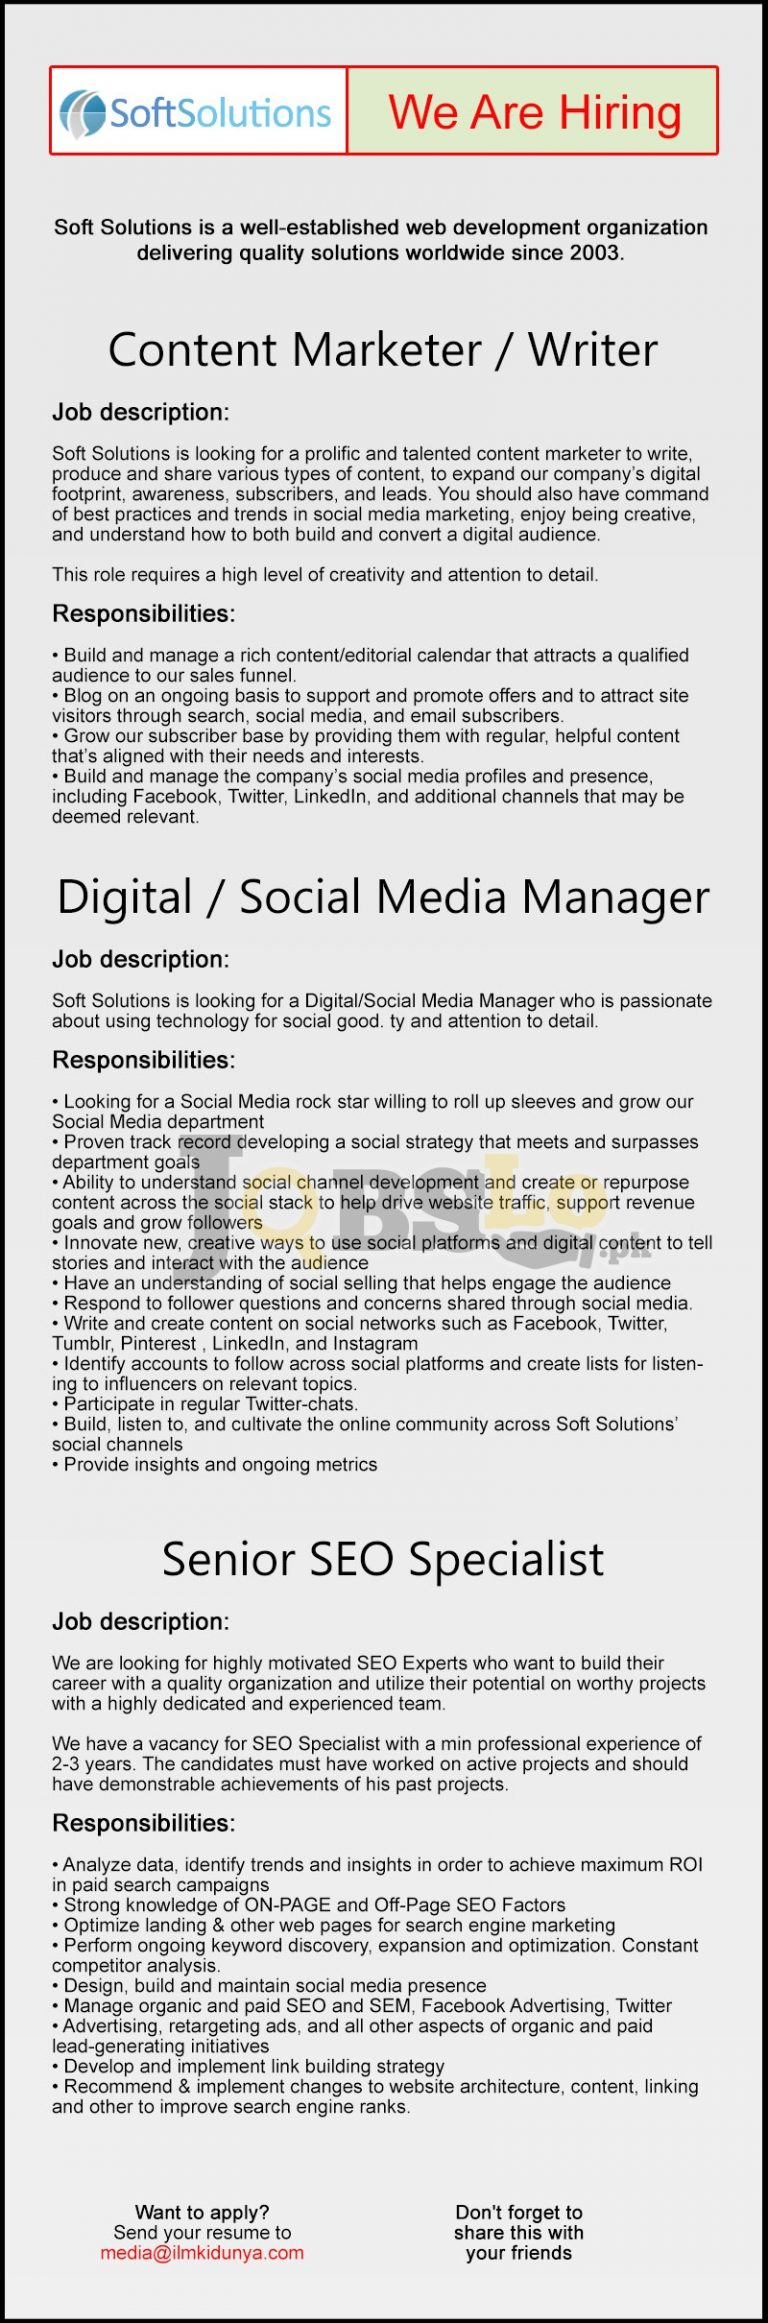 Soft Solution Organization Jobs 2016 For Content Marketer / Writer Apply Online Last Date